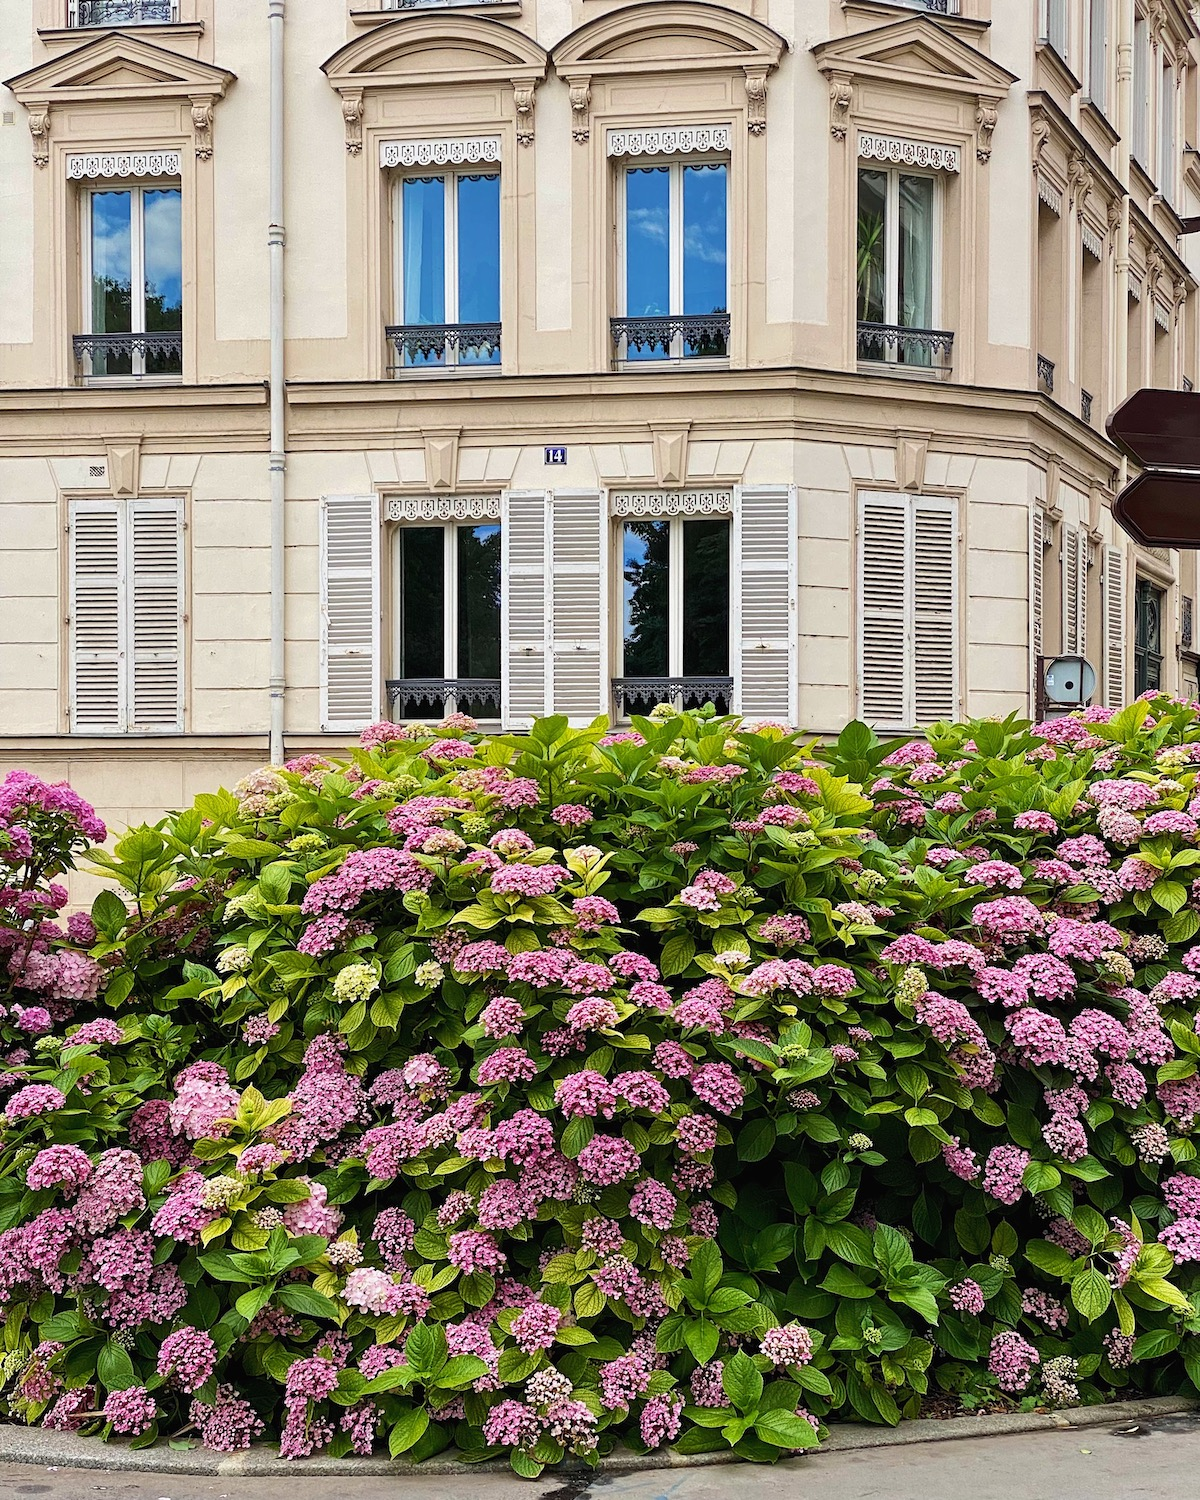 hydrangeas in neuilly. five friday finds from france feauring tomatoes at marché des sablons in neuilly.